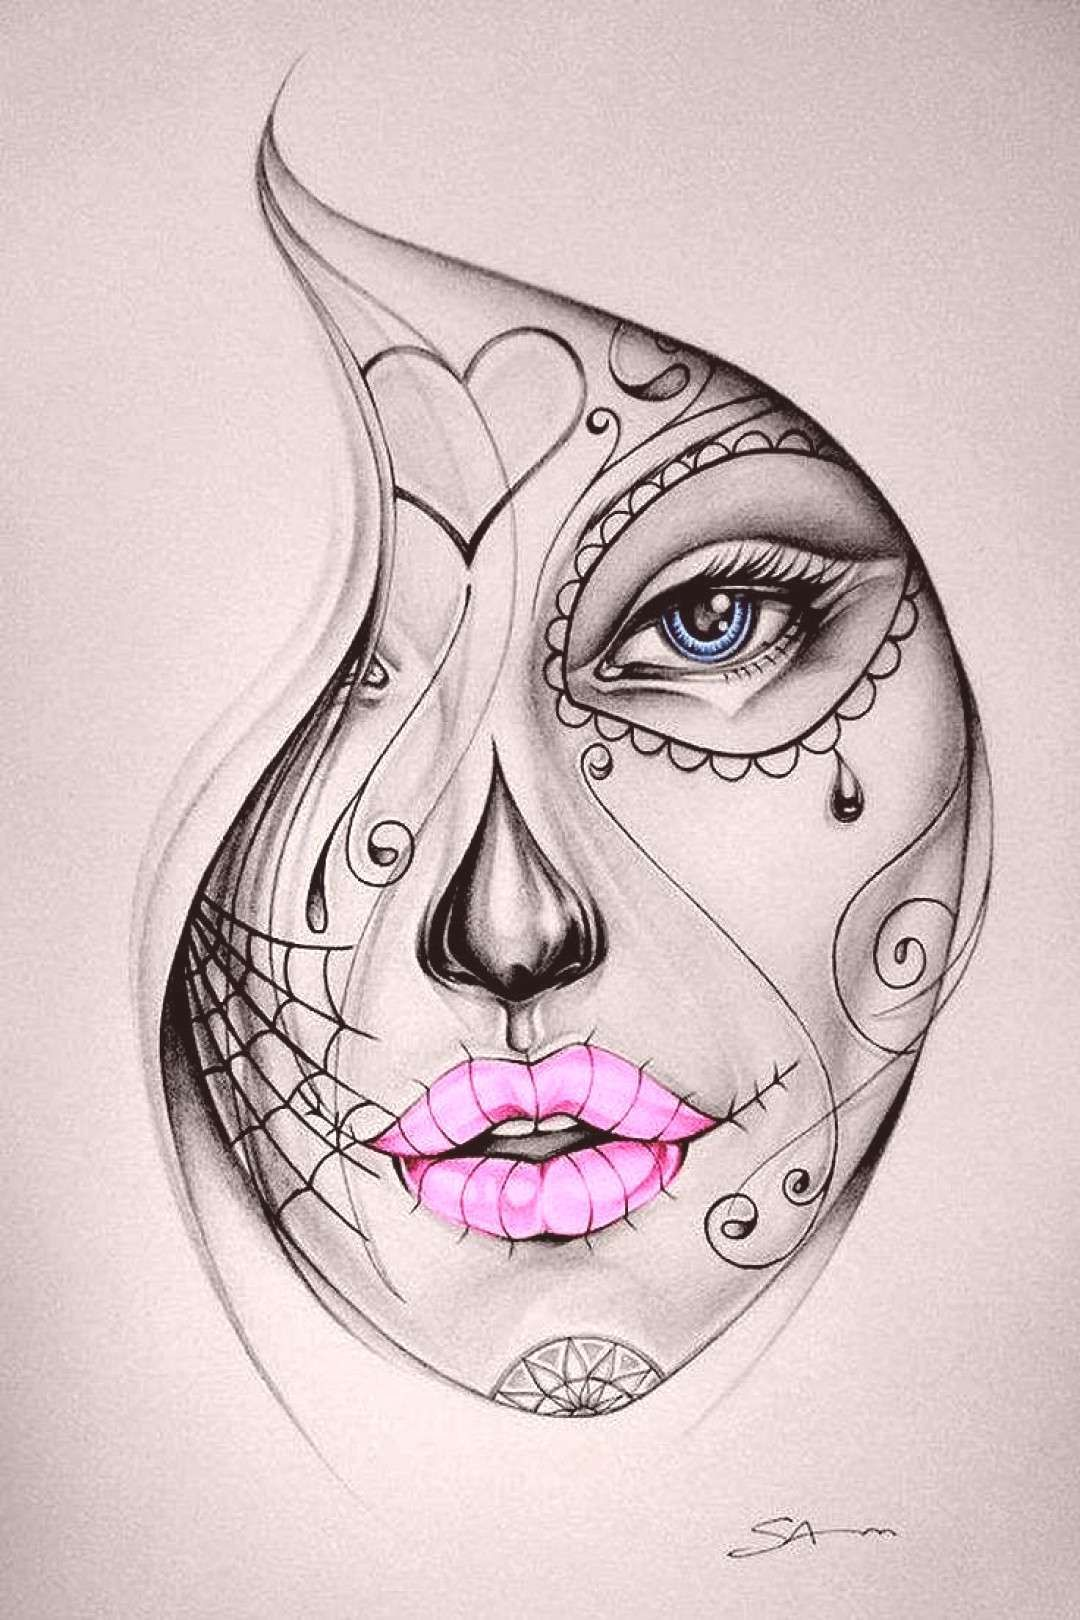 Tattoo Colour Candy Skull Girl Candy Skull Girl Tattoo Colouryou Can Find Candy Skulls And More On Our We In 2020 Skull Girl Tattoo Sketch Tattoo Design Sketches